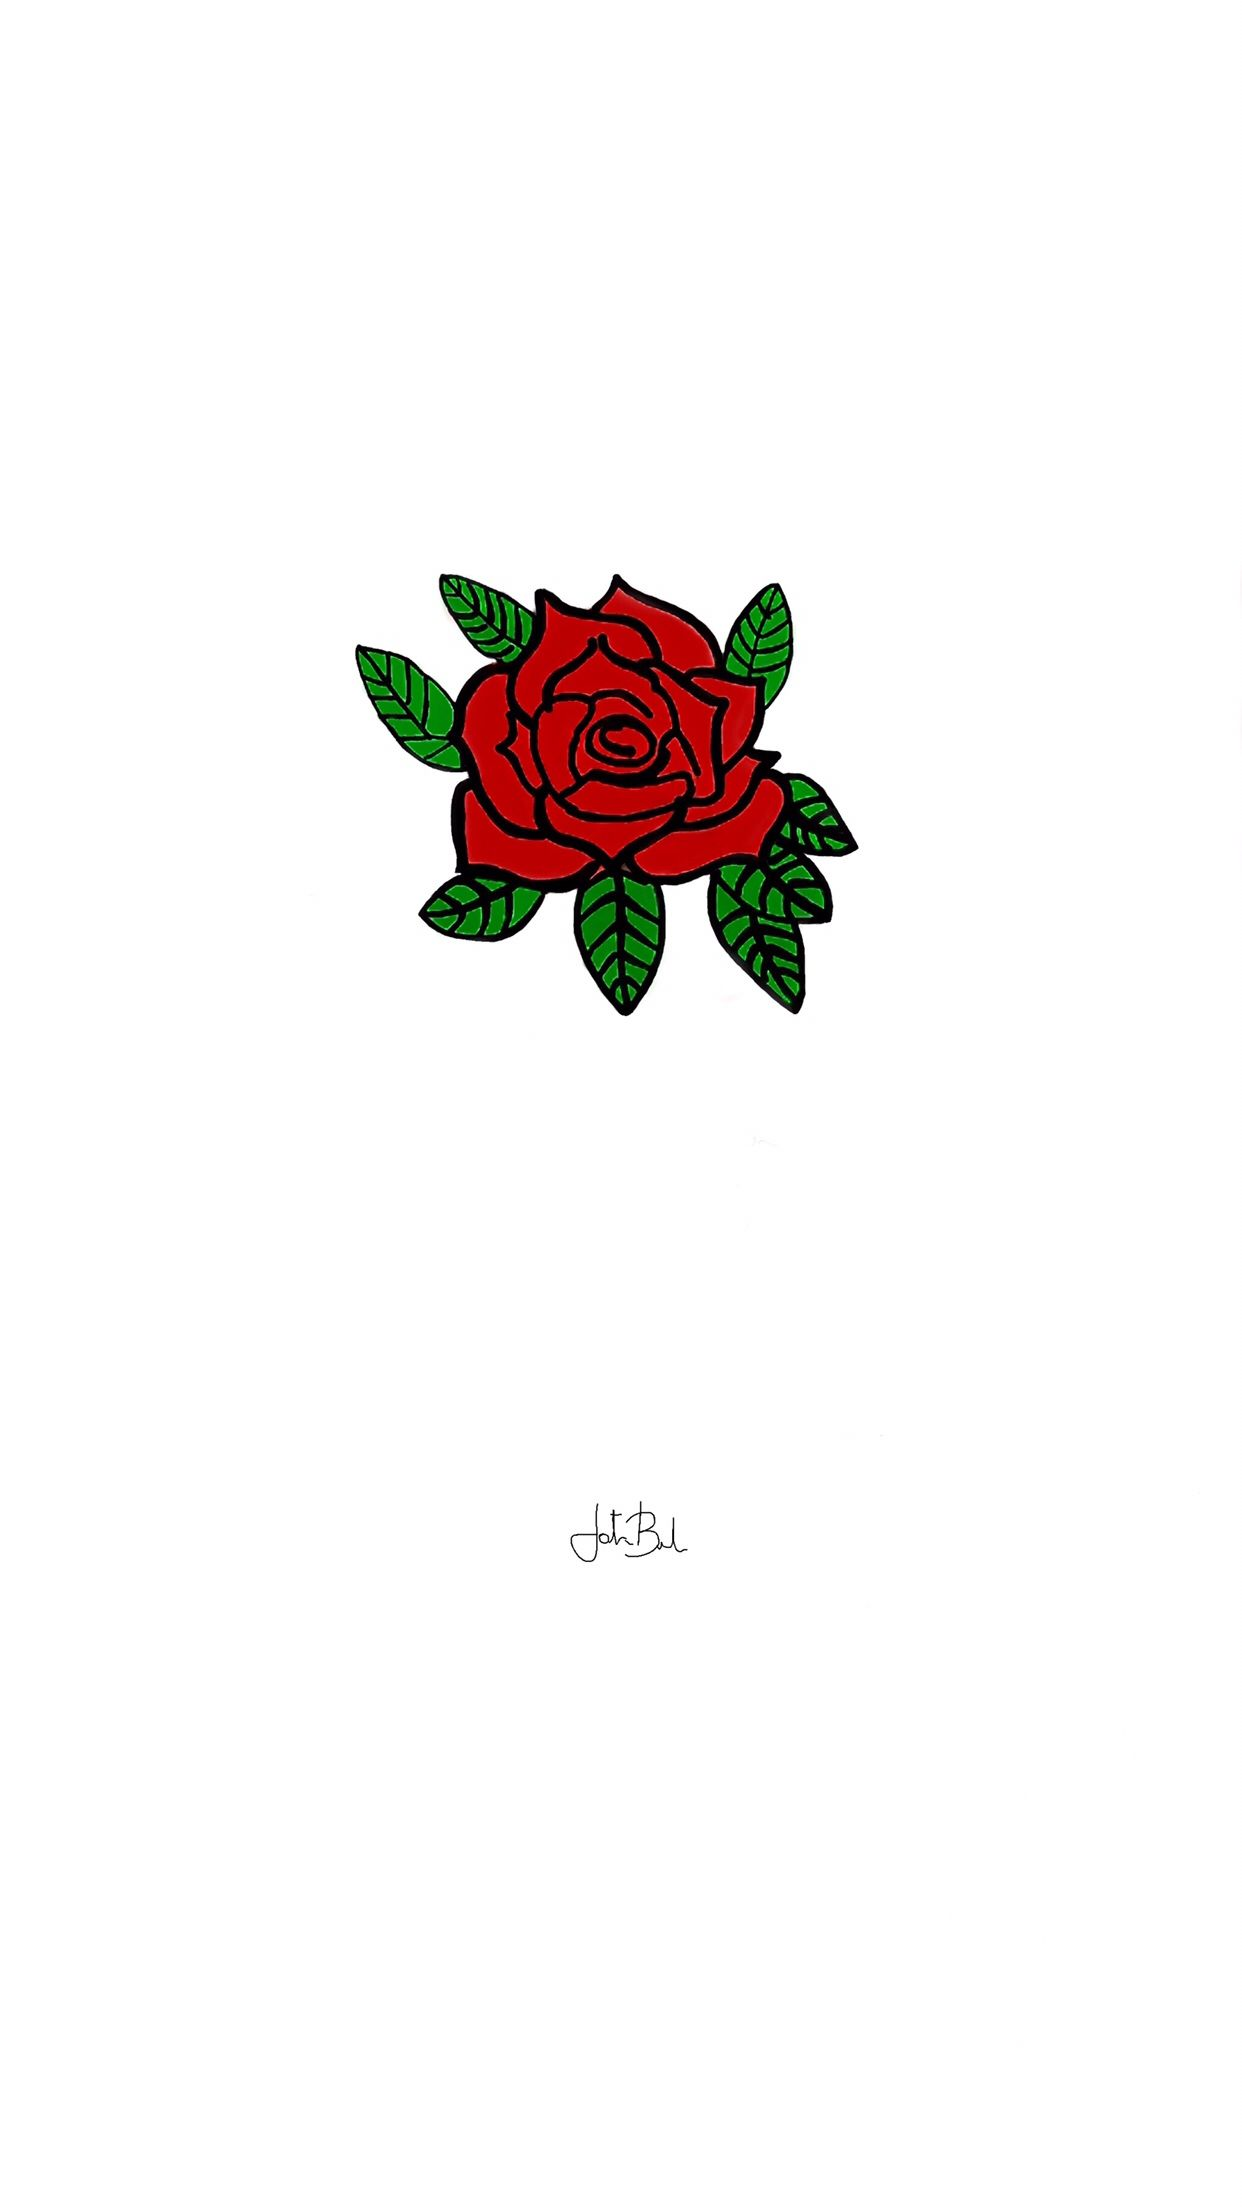 Rose Iphone Wallpaper Wallpaper Rose White Minimal Red Tumblr Drawing Whitewallpaper Tumb Wallpaper Iphone Roses Rose Wallpaper Best Iphone Wallpapers